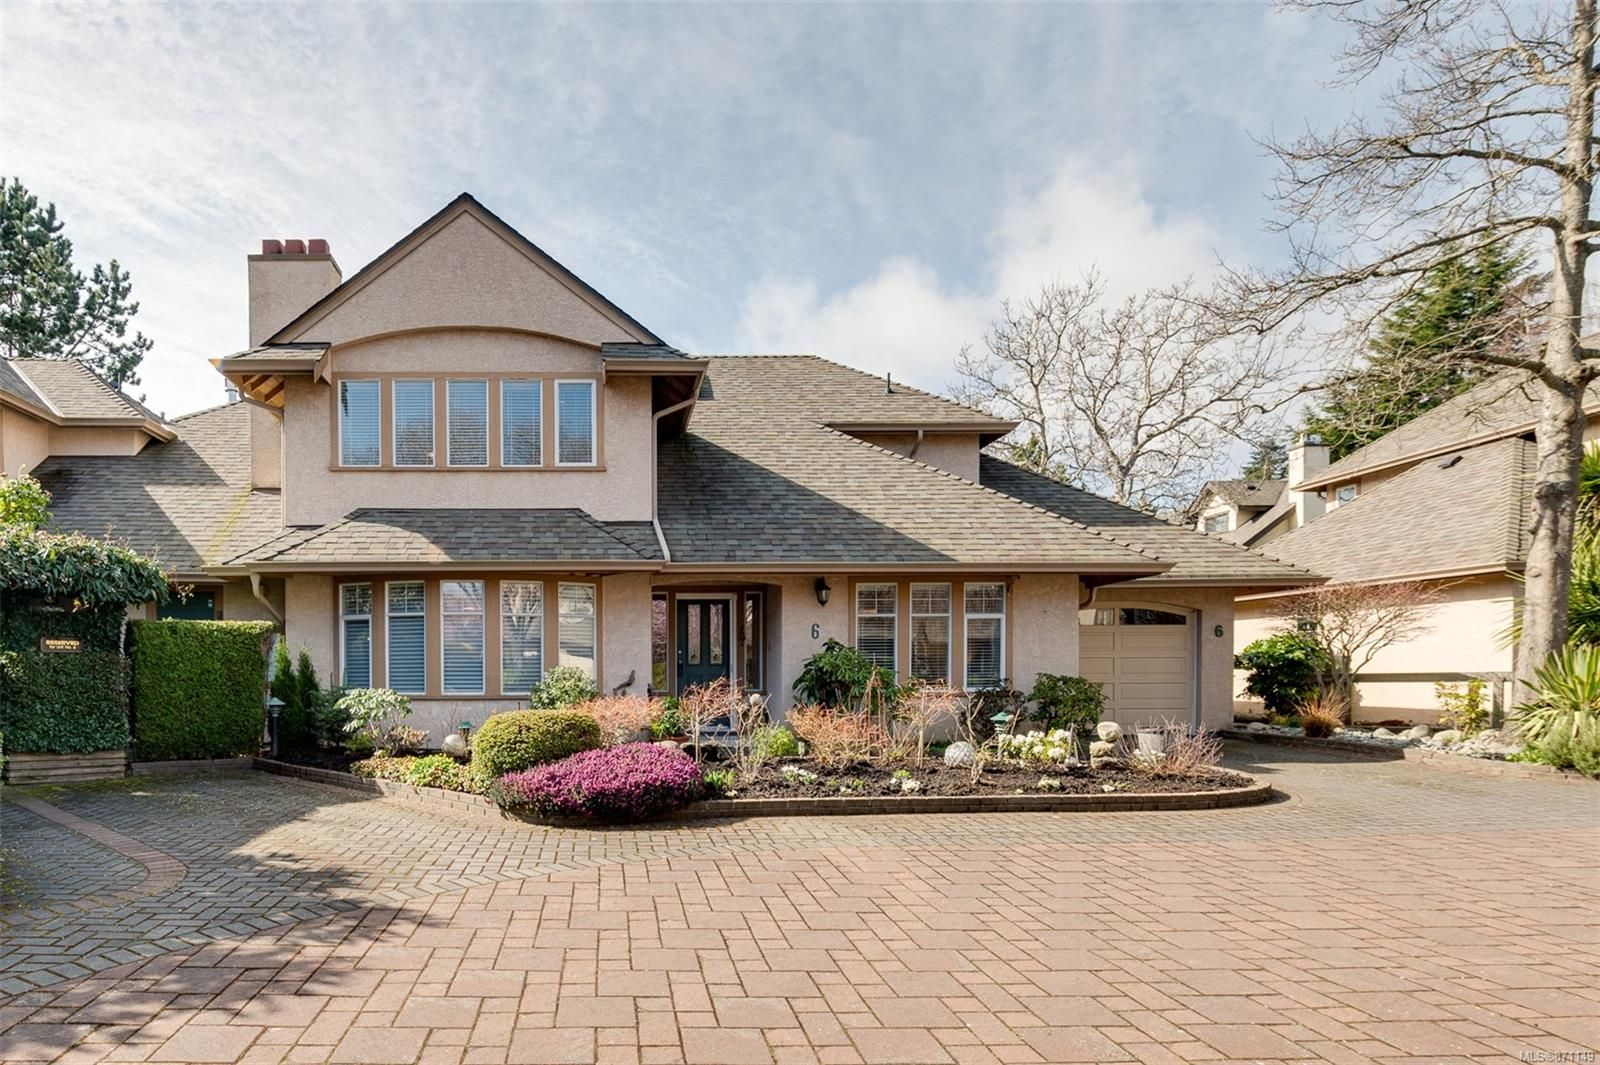 Main Photo: 6 2585 Sinclair Rd in : SE Cadboro Bay Row/Townhouse for sale (Saanich East)  : MLS®# 871149